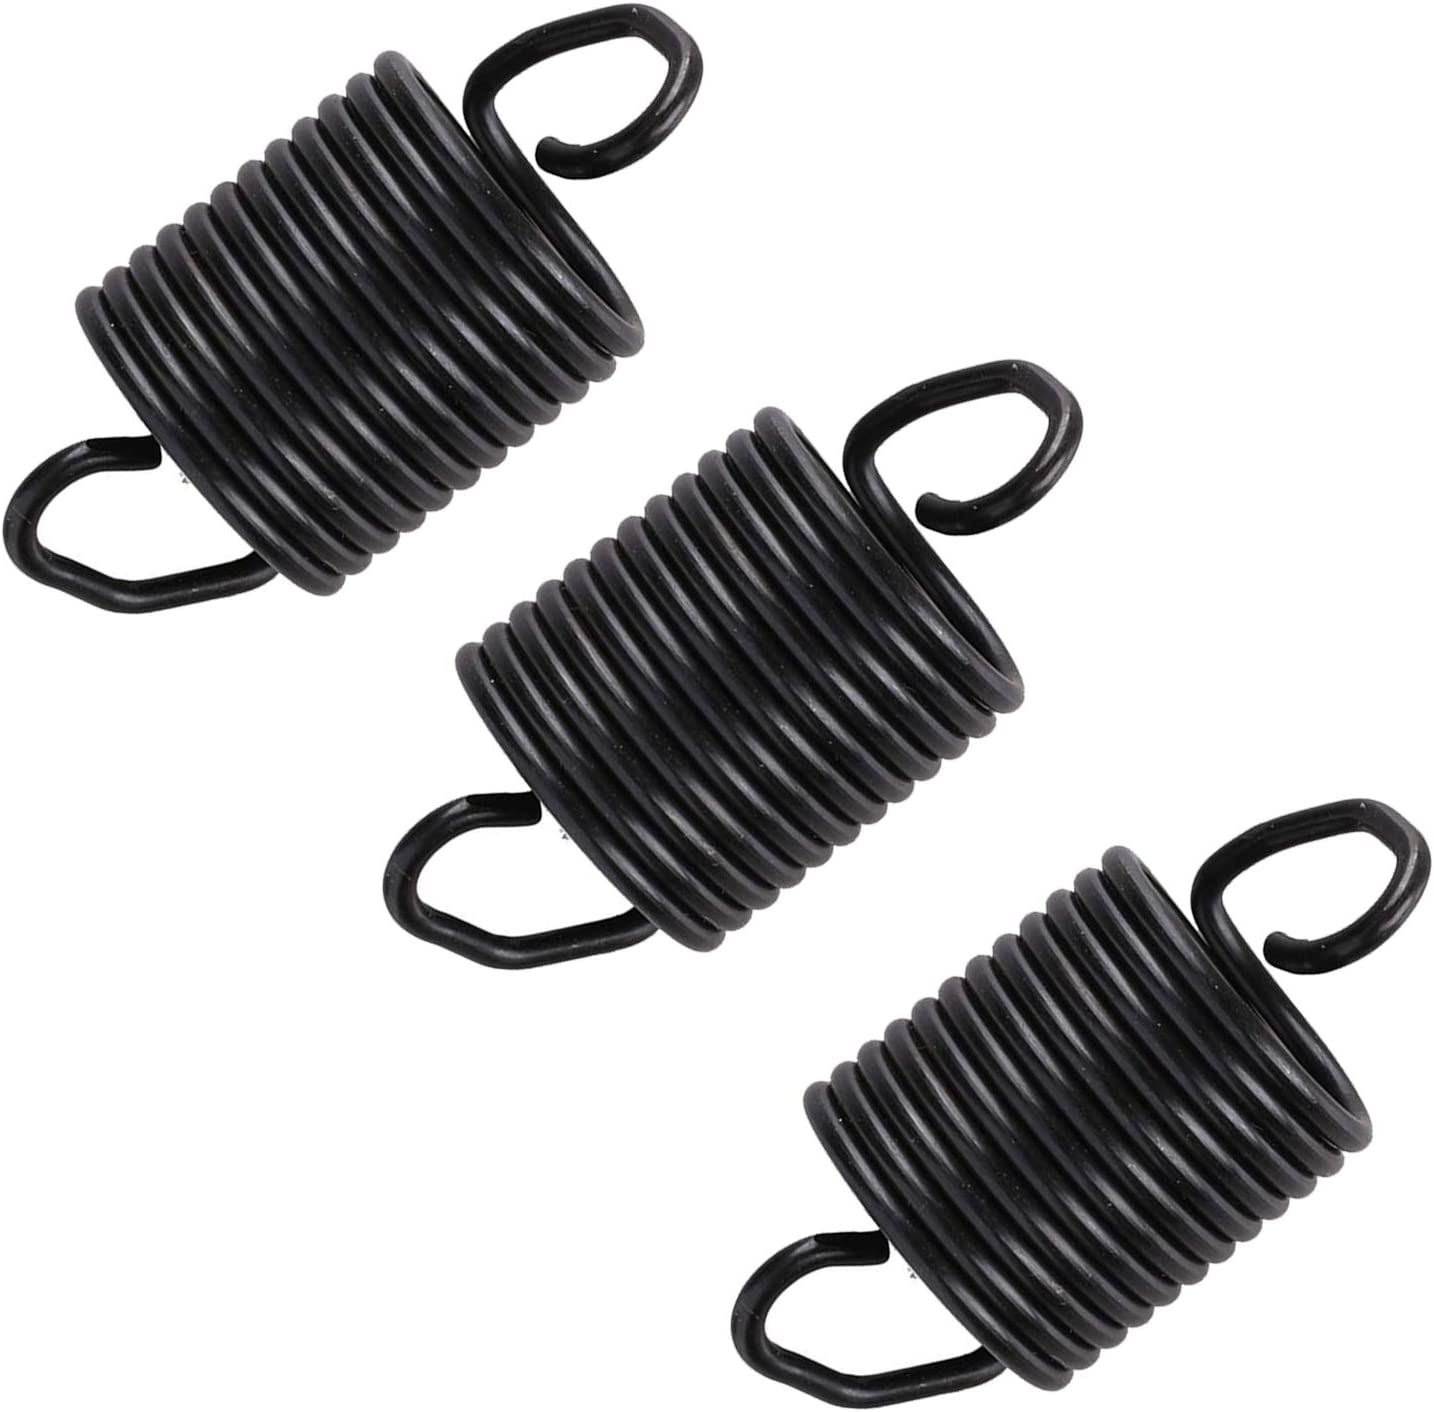 Washing Machine Suspension Tub Springs WP63907 - (3 PACK) For Whirlpool Kenmore Top Load Washer Suspension Spring - Replace 63907 PD00002622 63907 671098 AP6010168 PS11743345AP6010168 Black